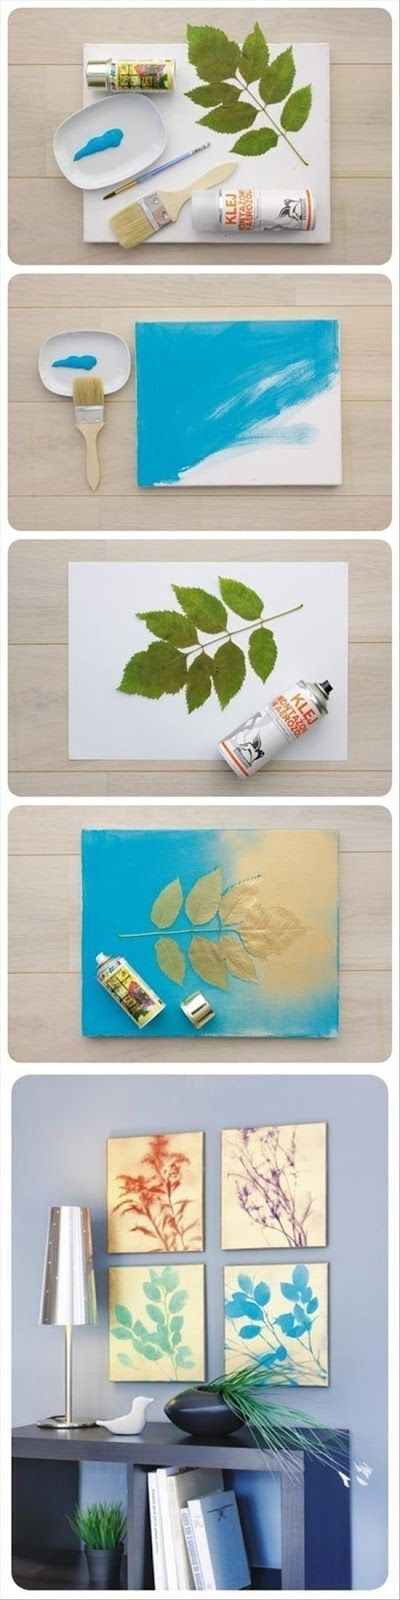 Simple Natural DIY Wall Art With Natural Motifs